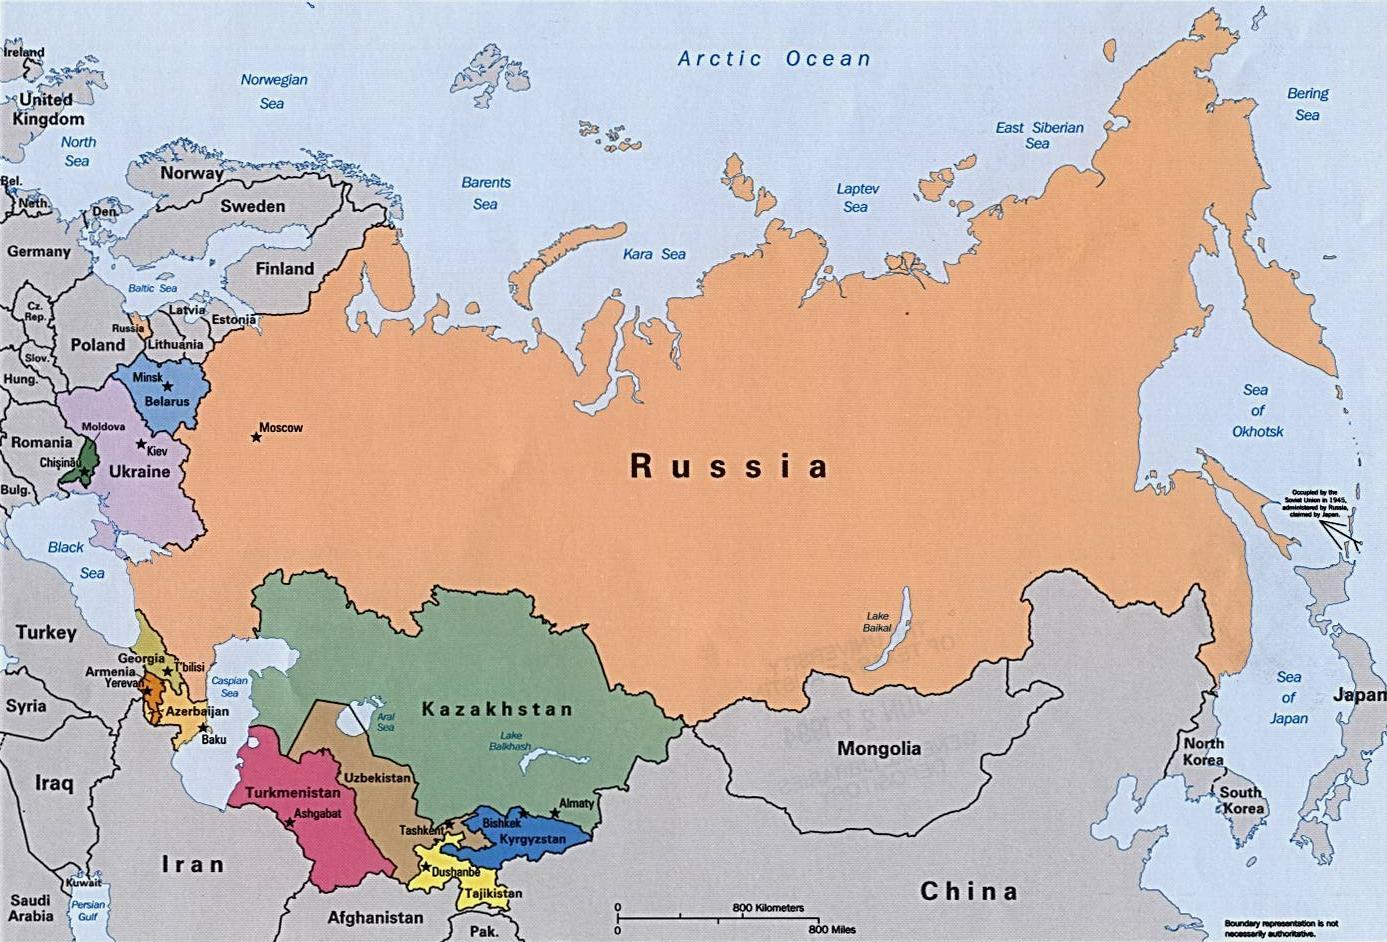 Russia Continent Map Russian Continent Map Eastern Europe Europe - What continent is afghanistan in